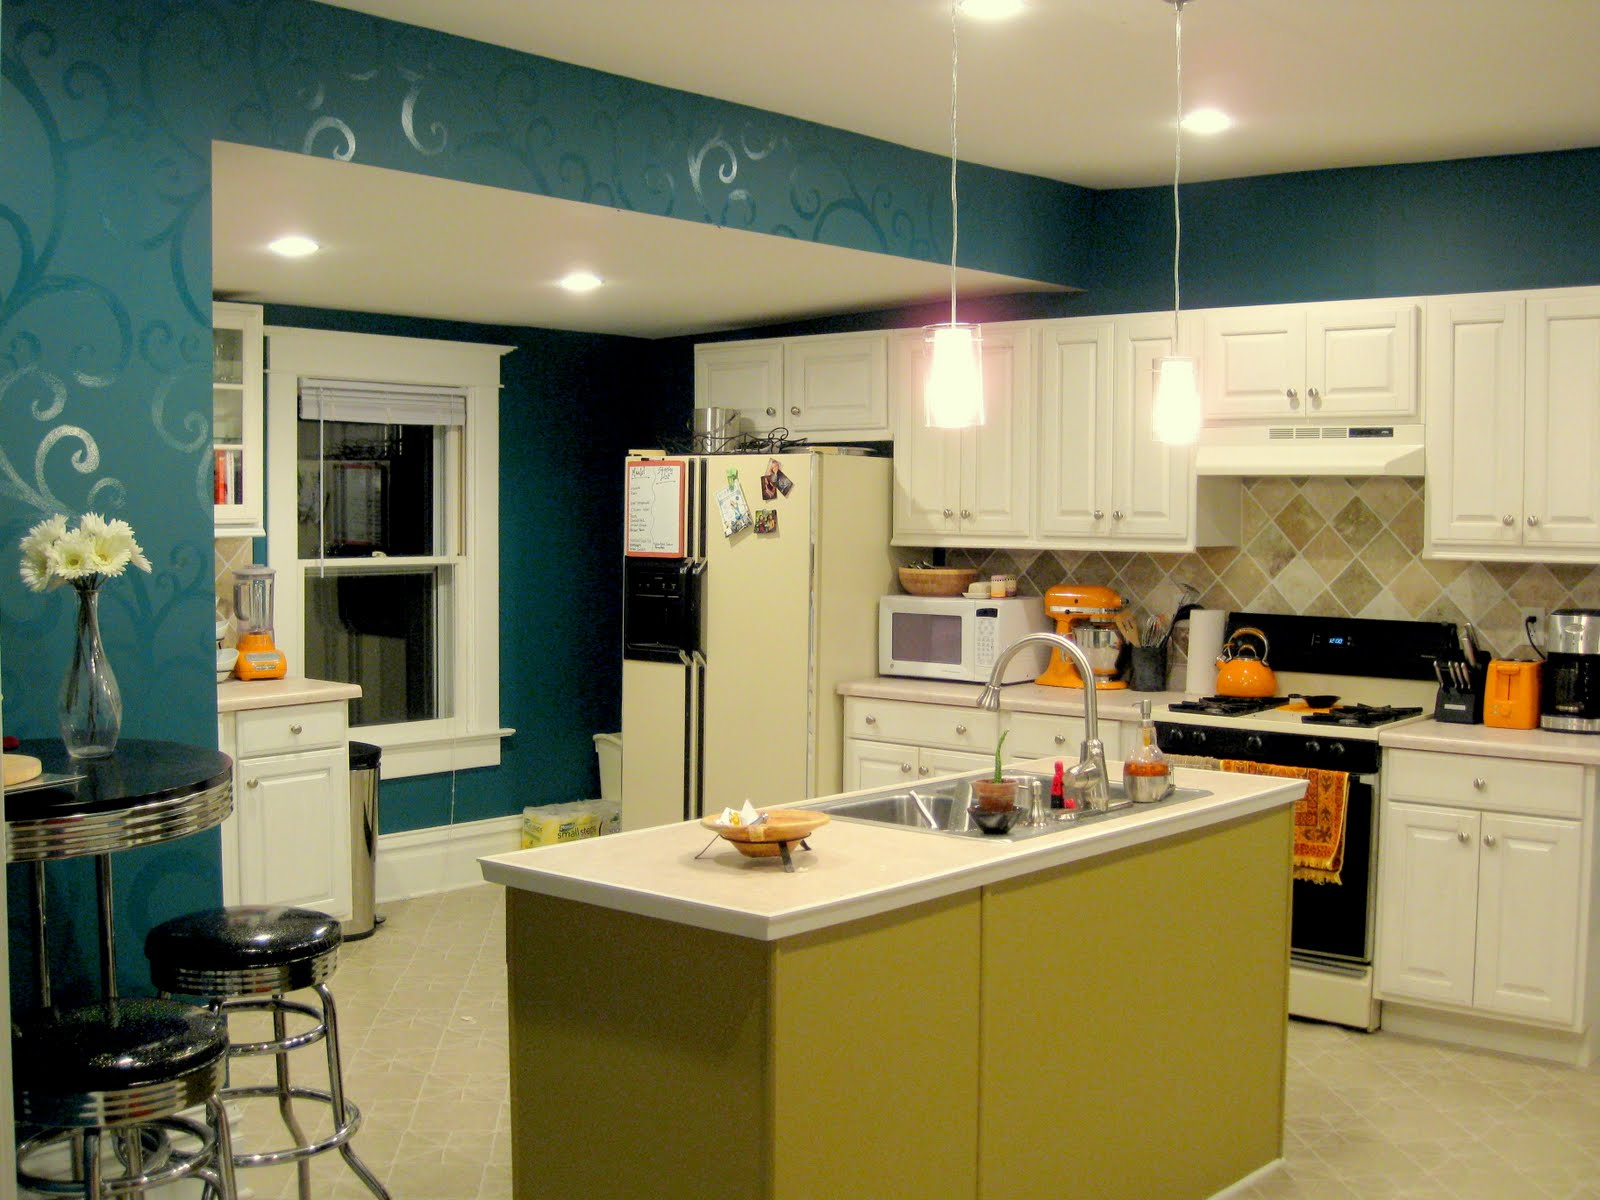 our kitchen reveal kitchen painting ideas Budget Kitchen Updates Accent Wall and Faux Painted Backsplash